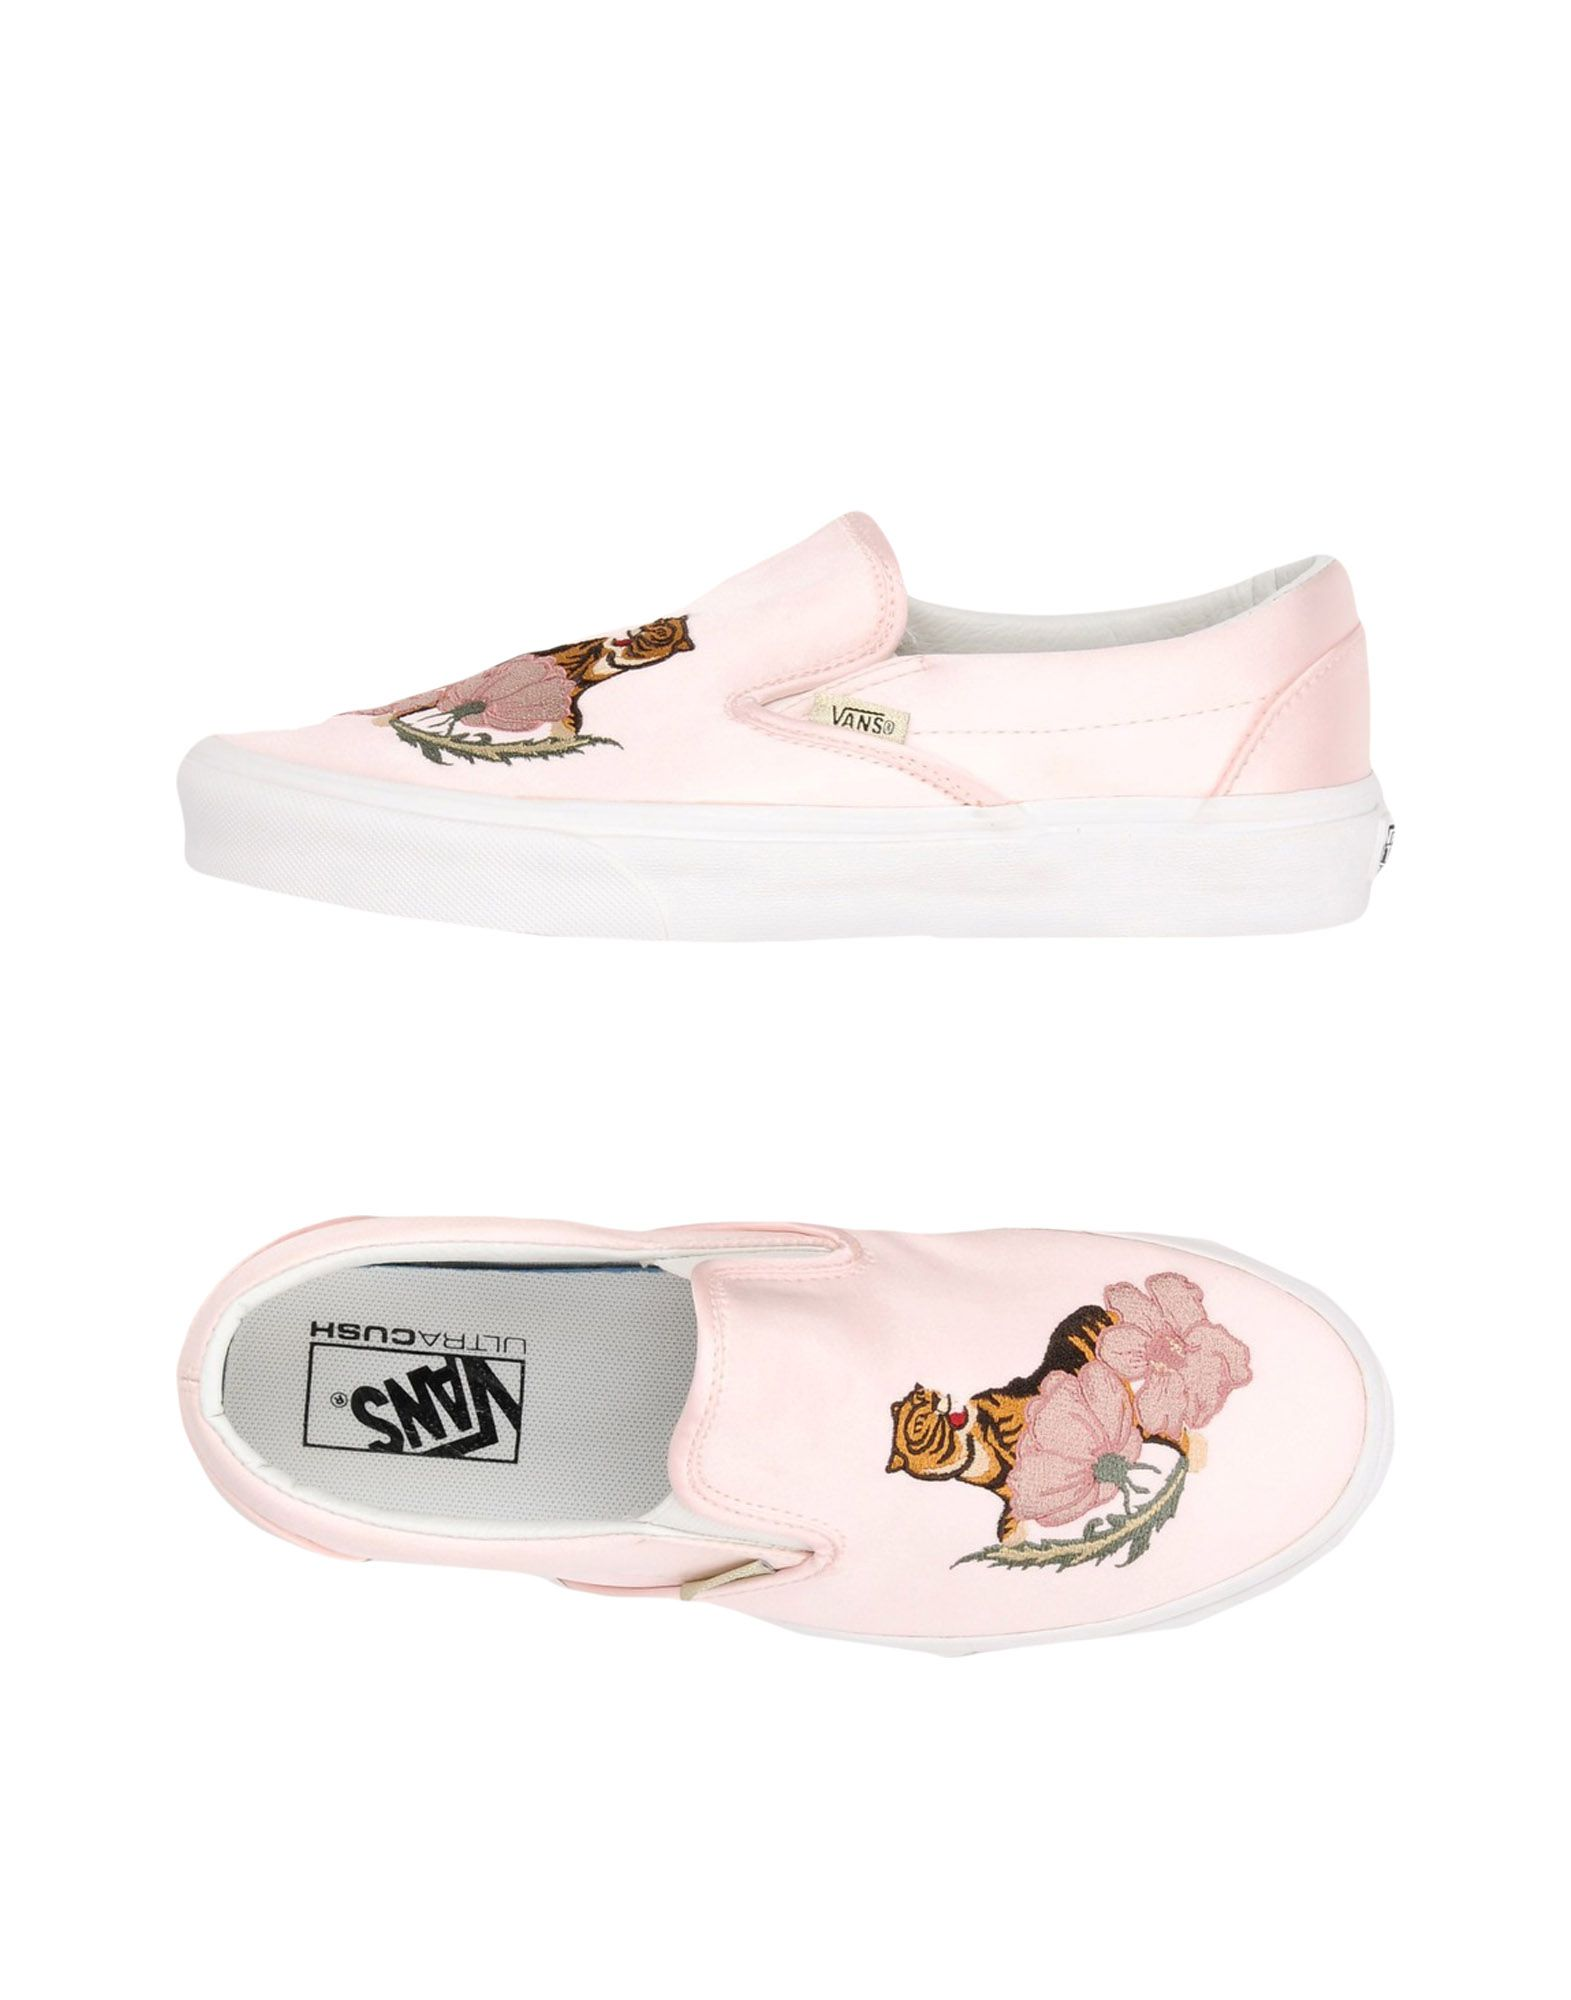 Sneakers Vans Ua Classic Slip-On Dx California Souvenir - Femme - Sneakers Vans sur